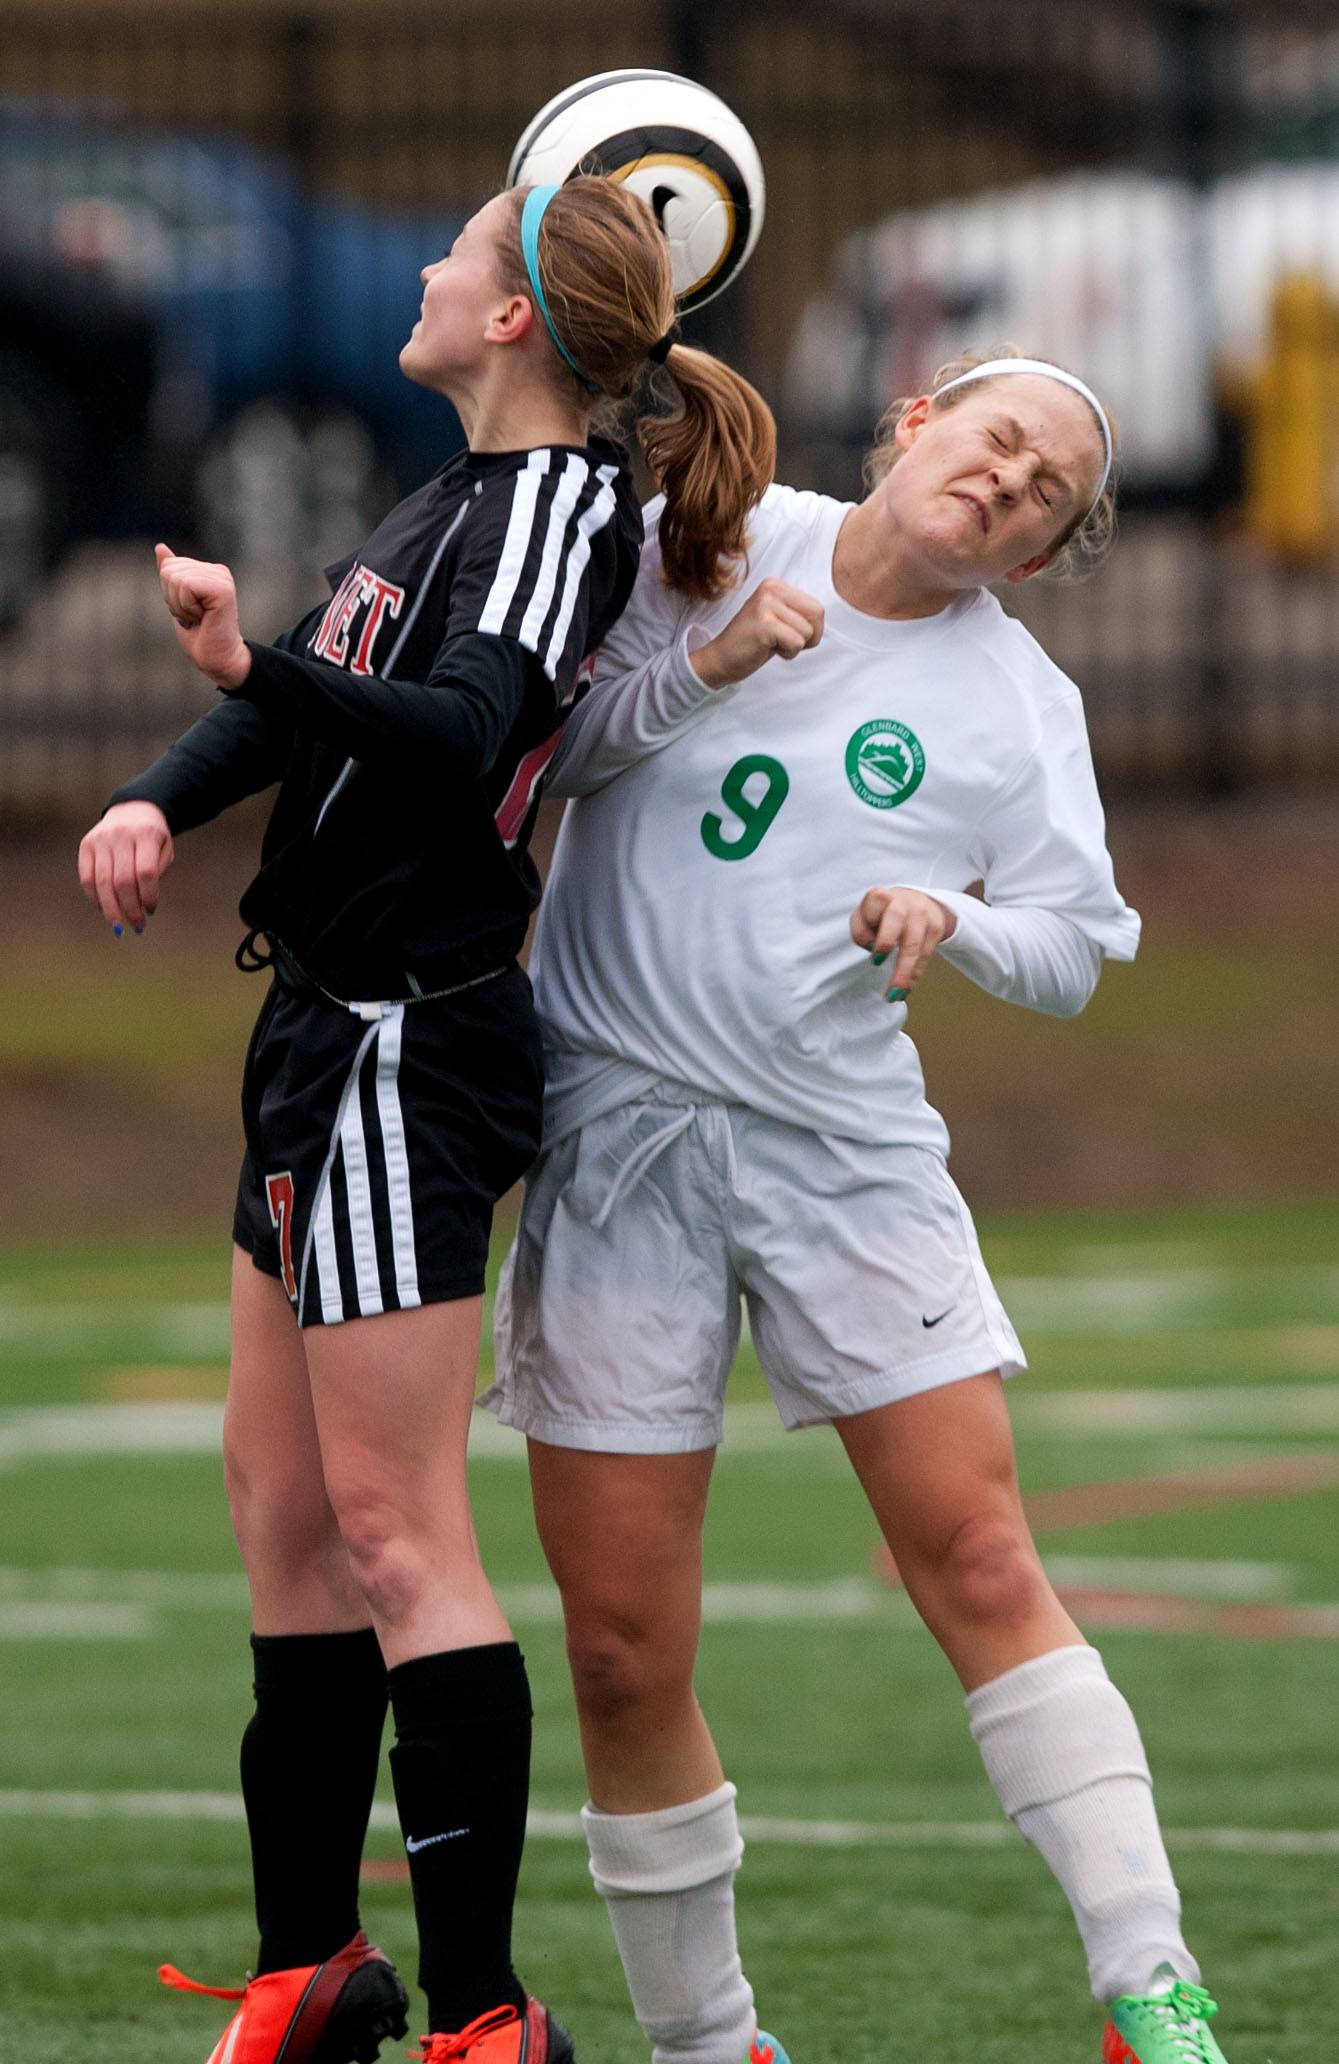 Benet's Jackie Kaufman, left, battles Glenbard West's Katie Strieker during girls soccer action.